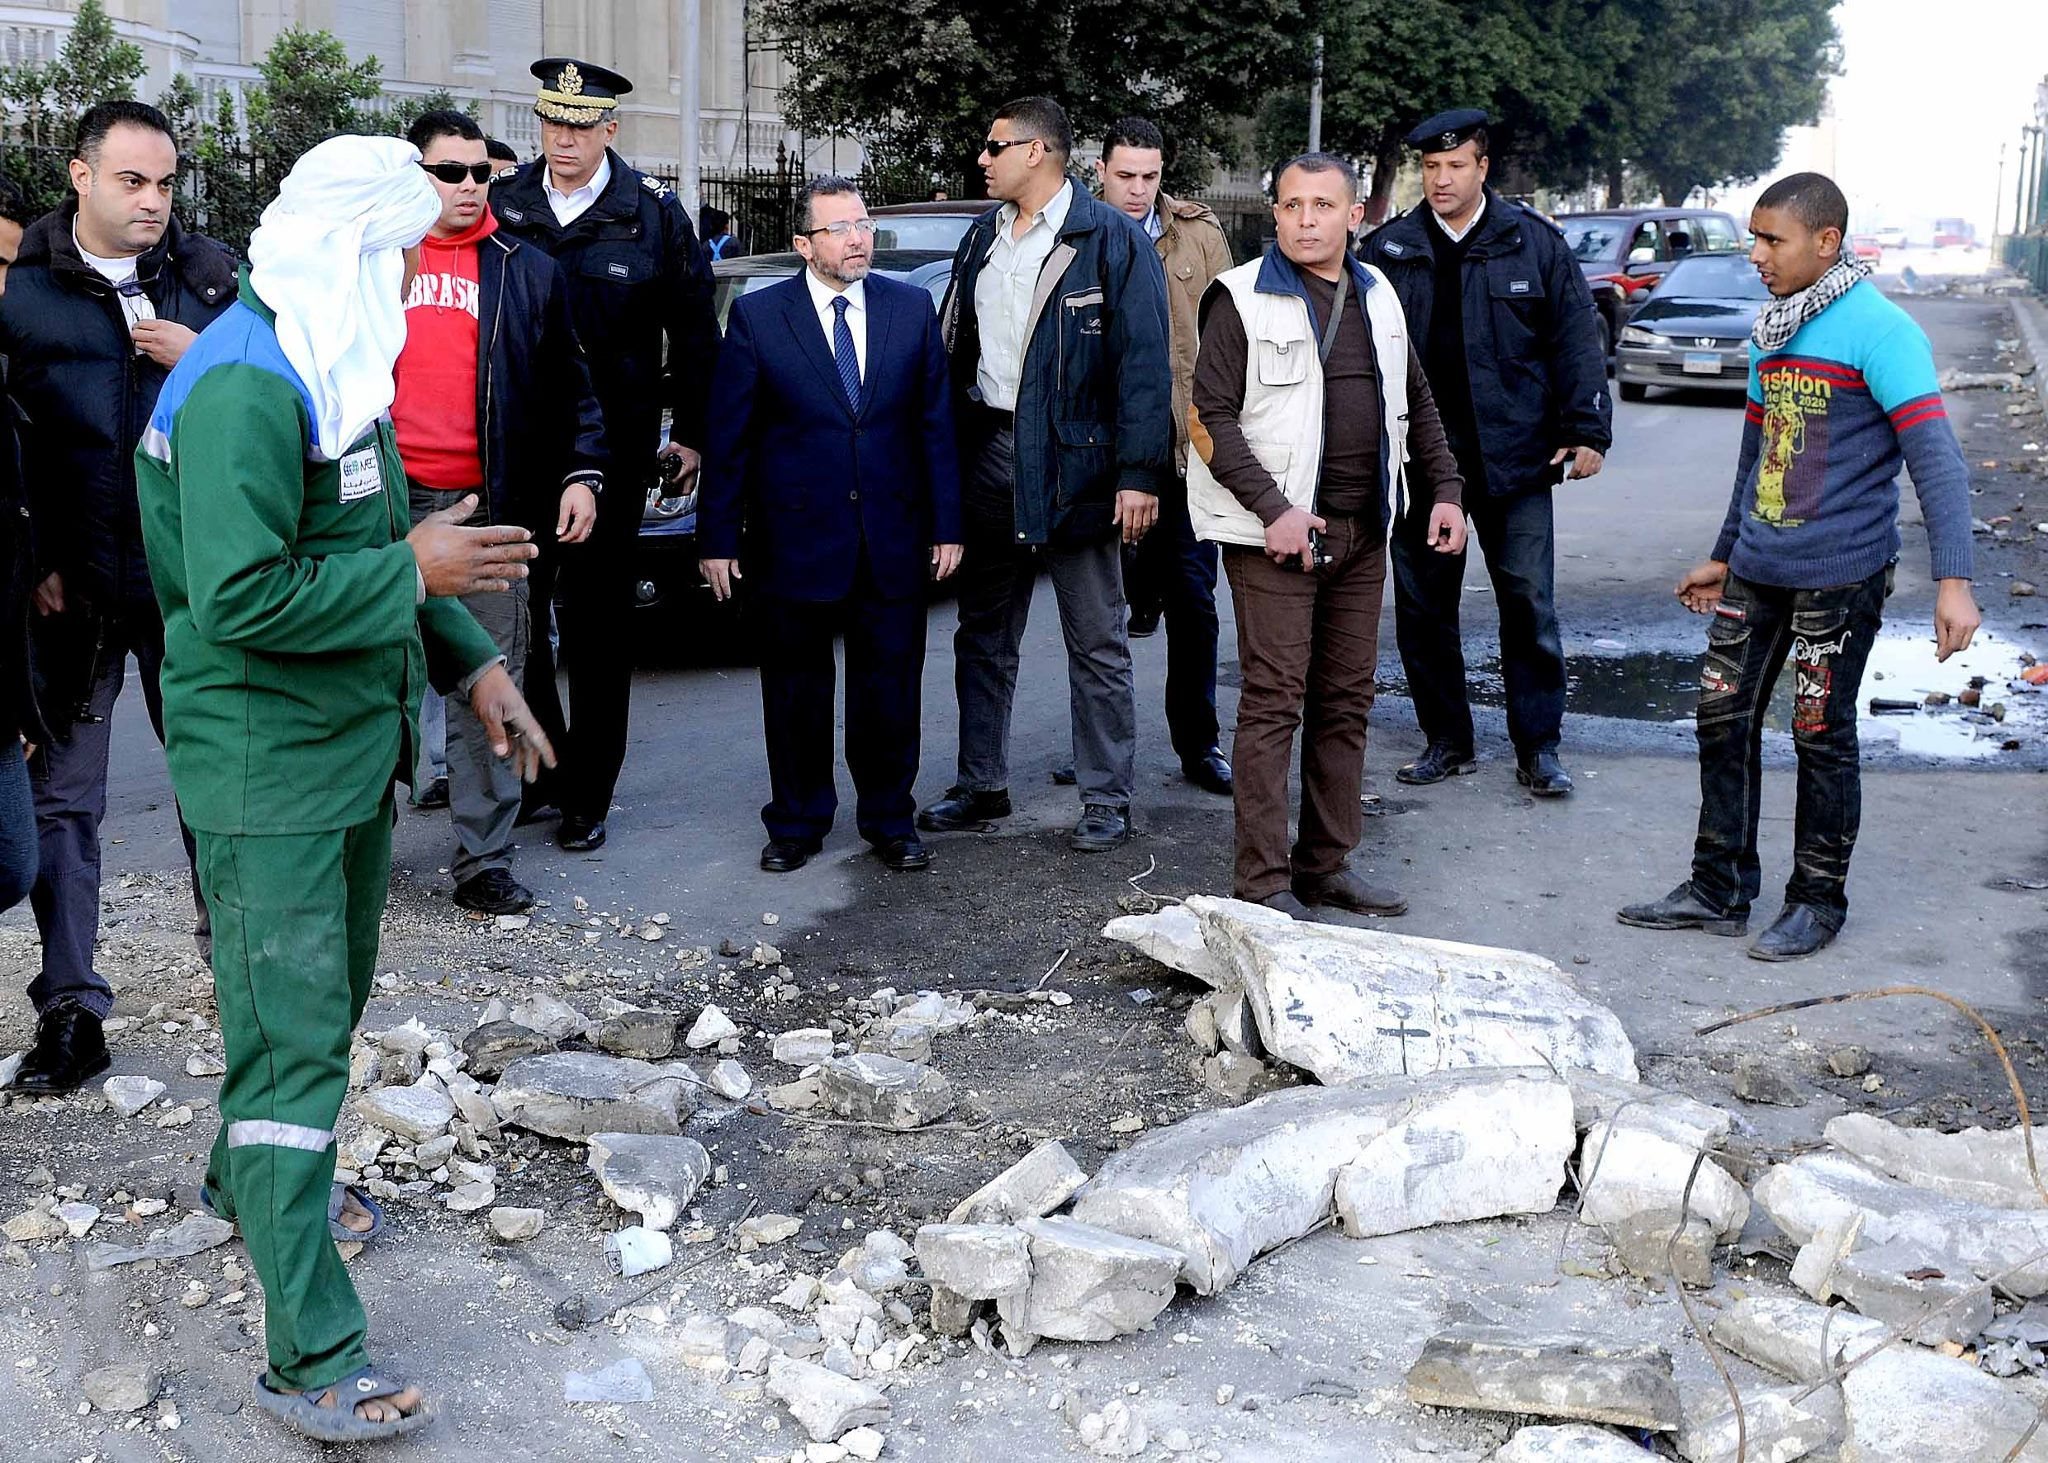 Prime Minister Hisham Qandil inspects the damage in the aftermath of the Presidential Palace (Photo courtesy of Hisham Qandil's Facebook page)